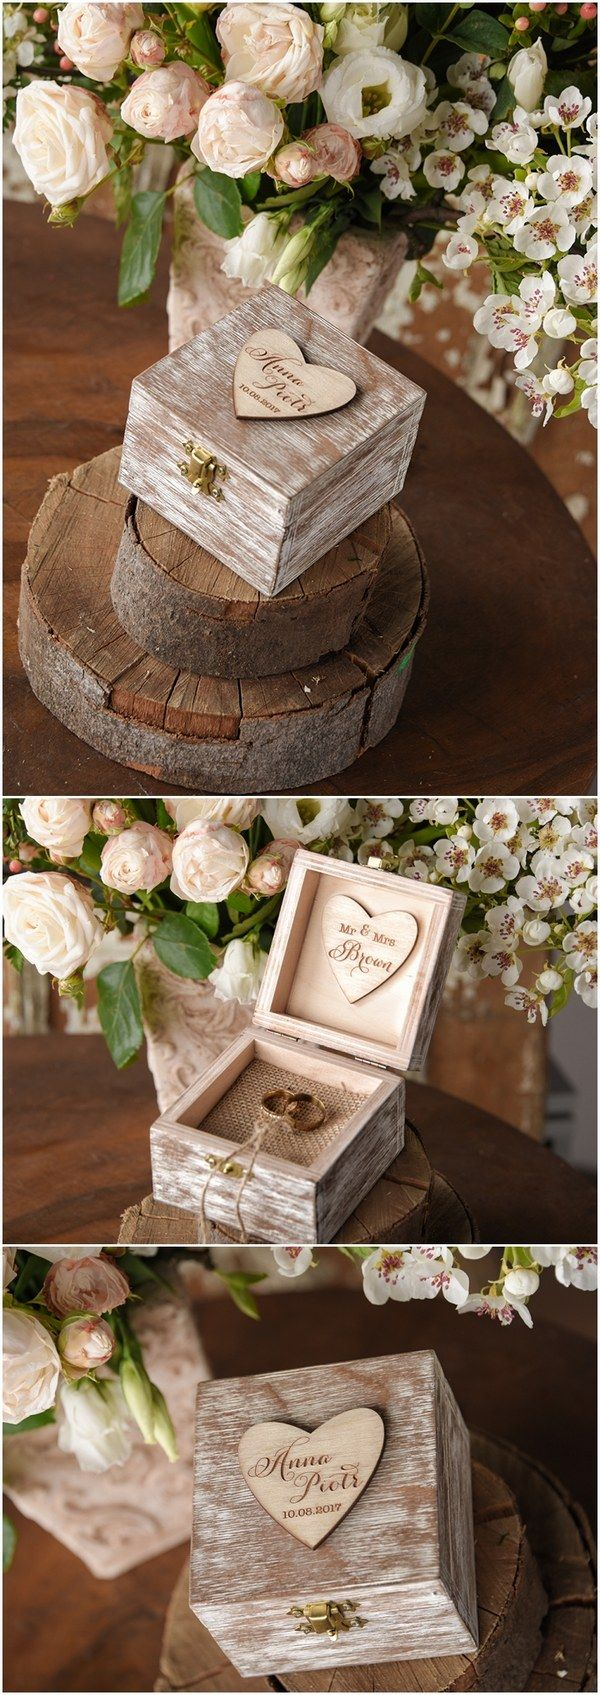 Rustic country wood wedding ring box #rusticwedding #countrywedding #weddingideas